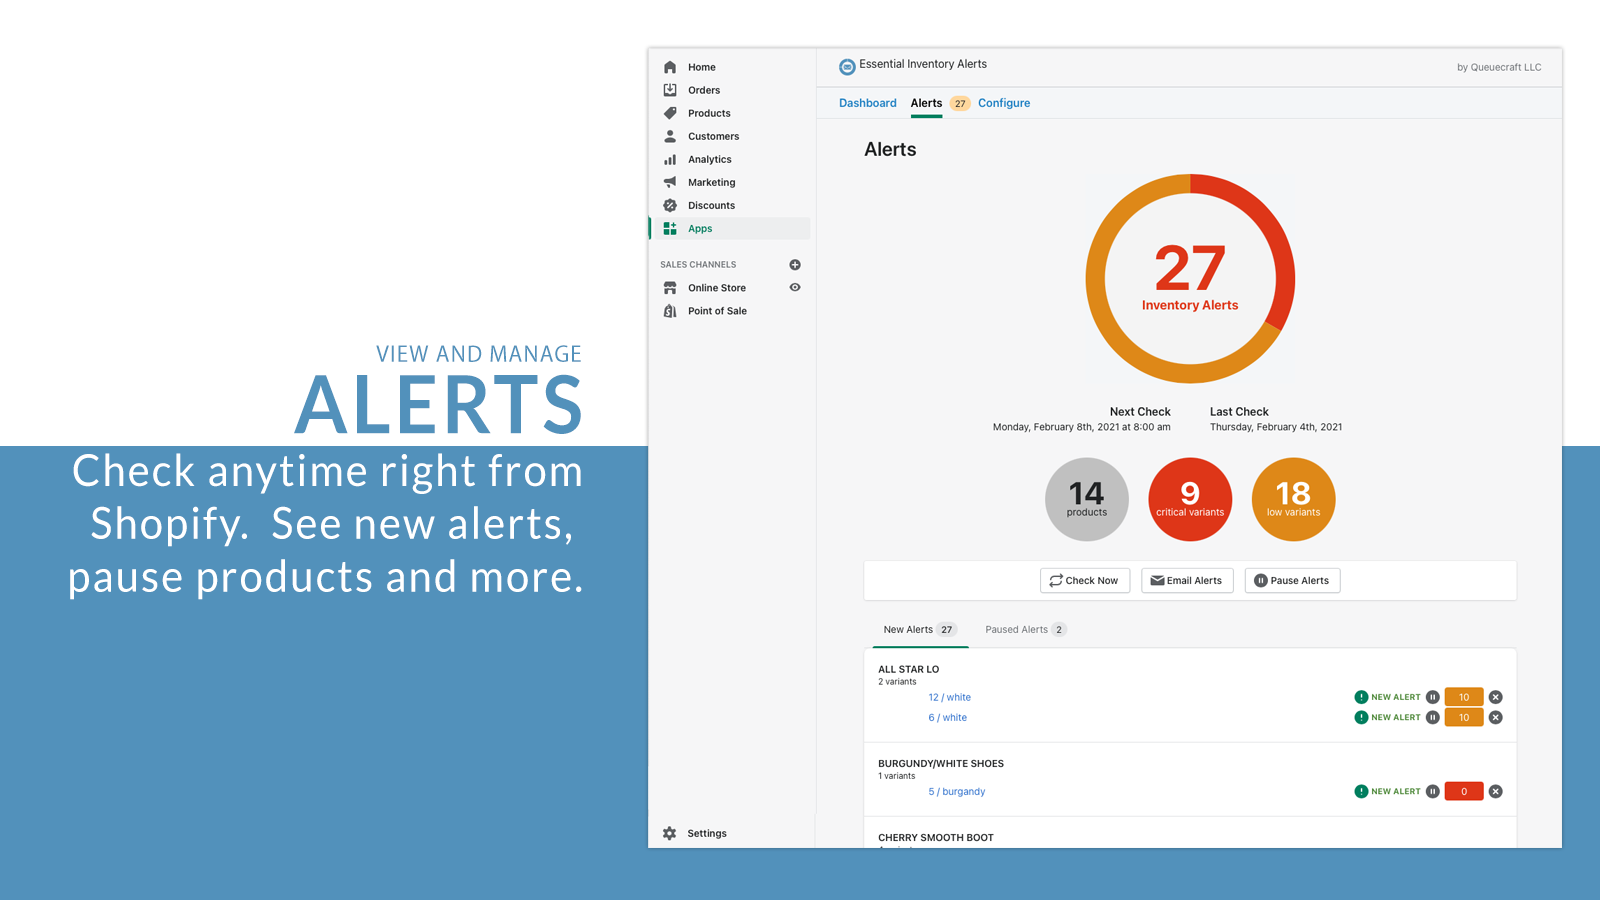 View and manage alerts right from Shopify.